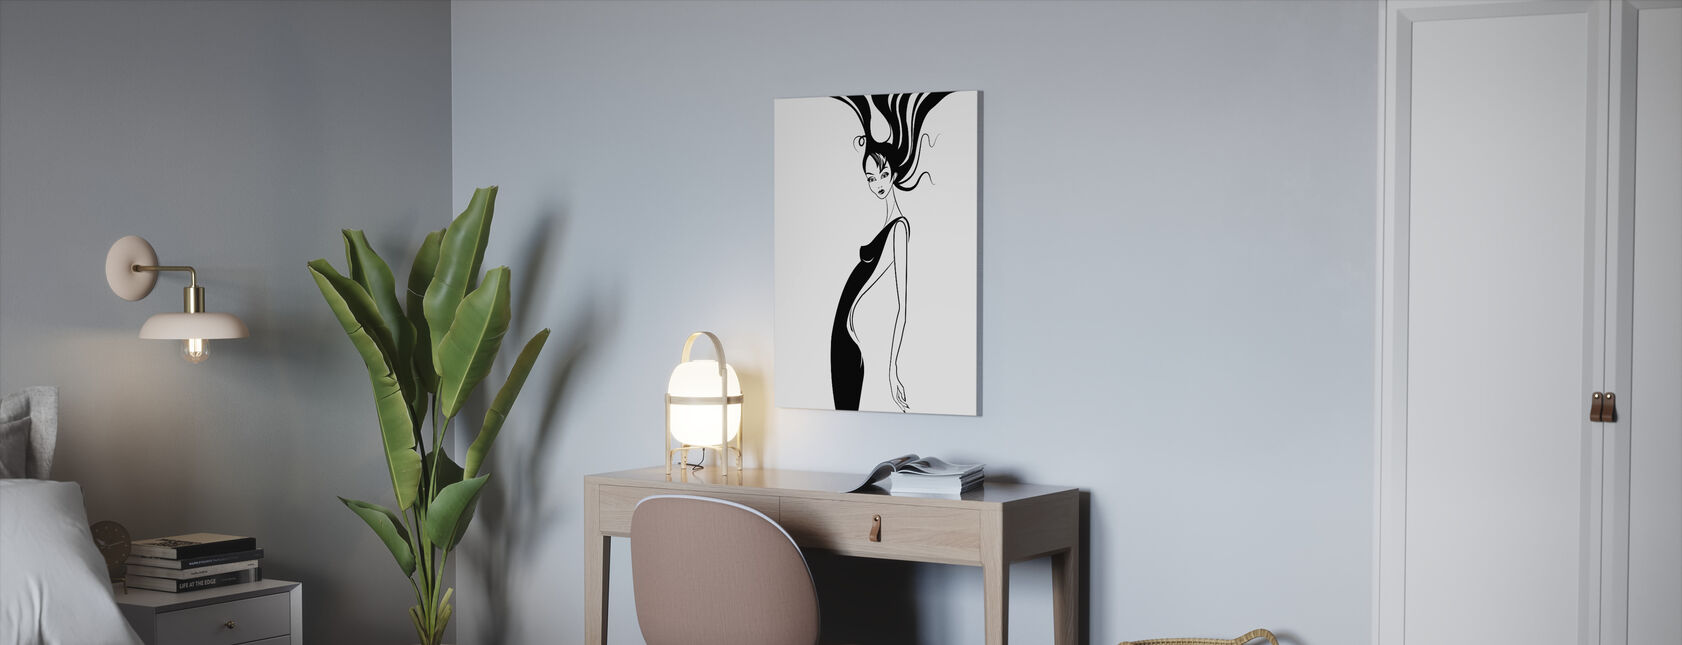 Retro Glamour - Canvas print - Office